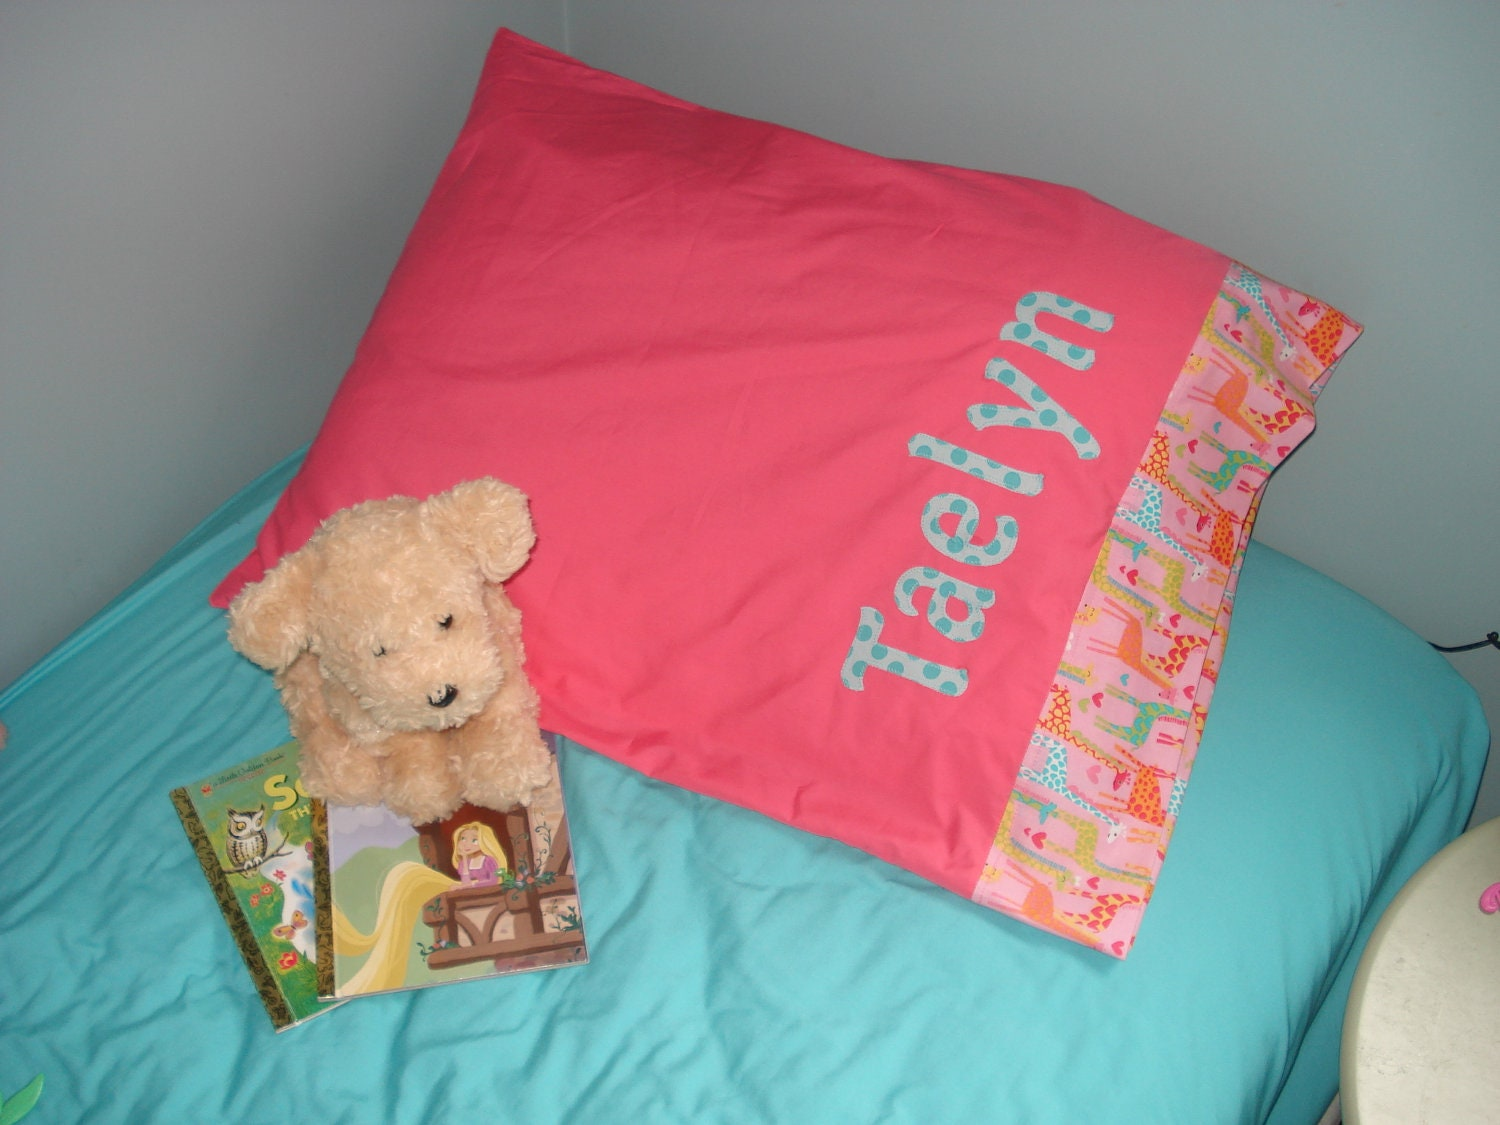 standard bed size pillow case personalized with full by tedandlucy. Black Bedroom Furniture Sets. Home Design Ideas